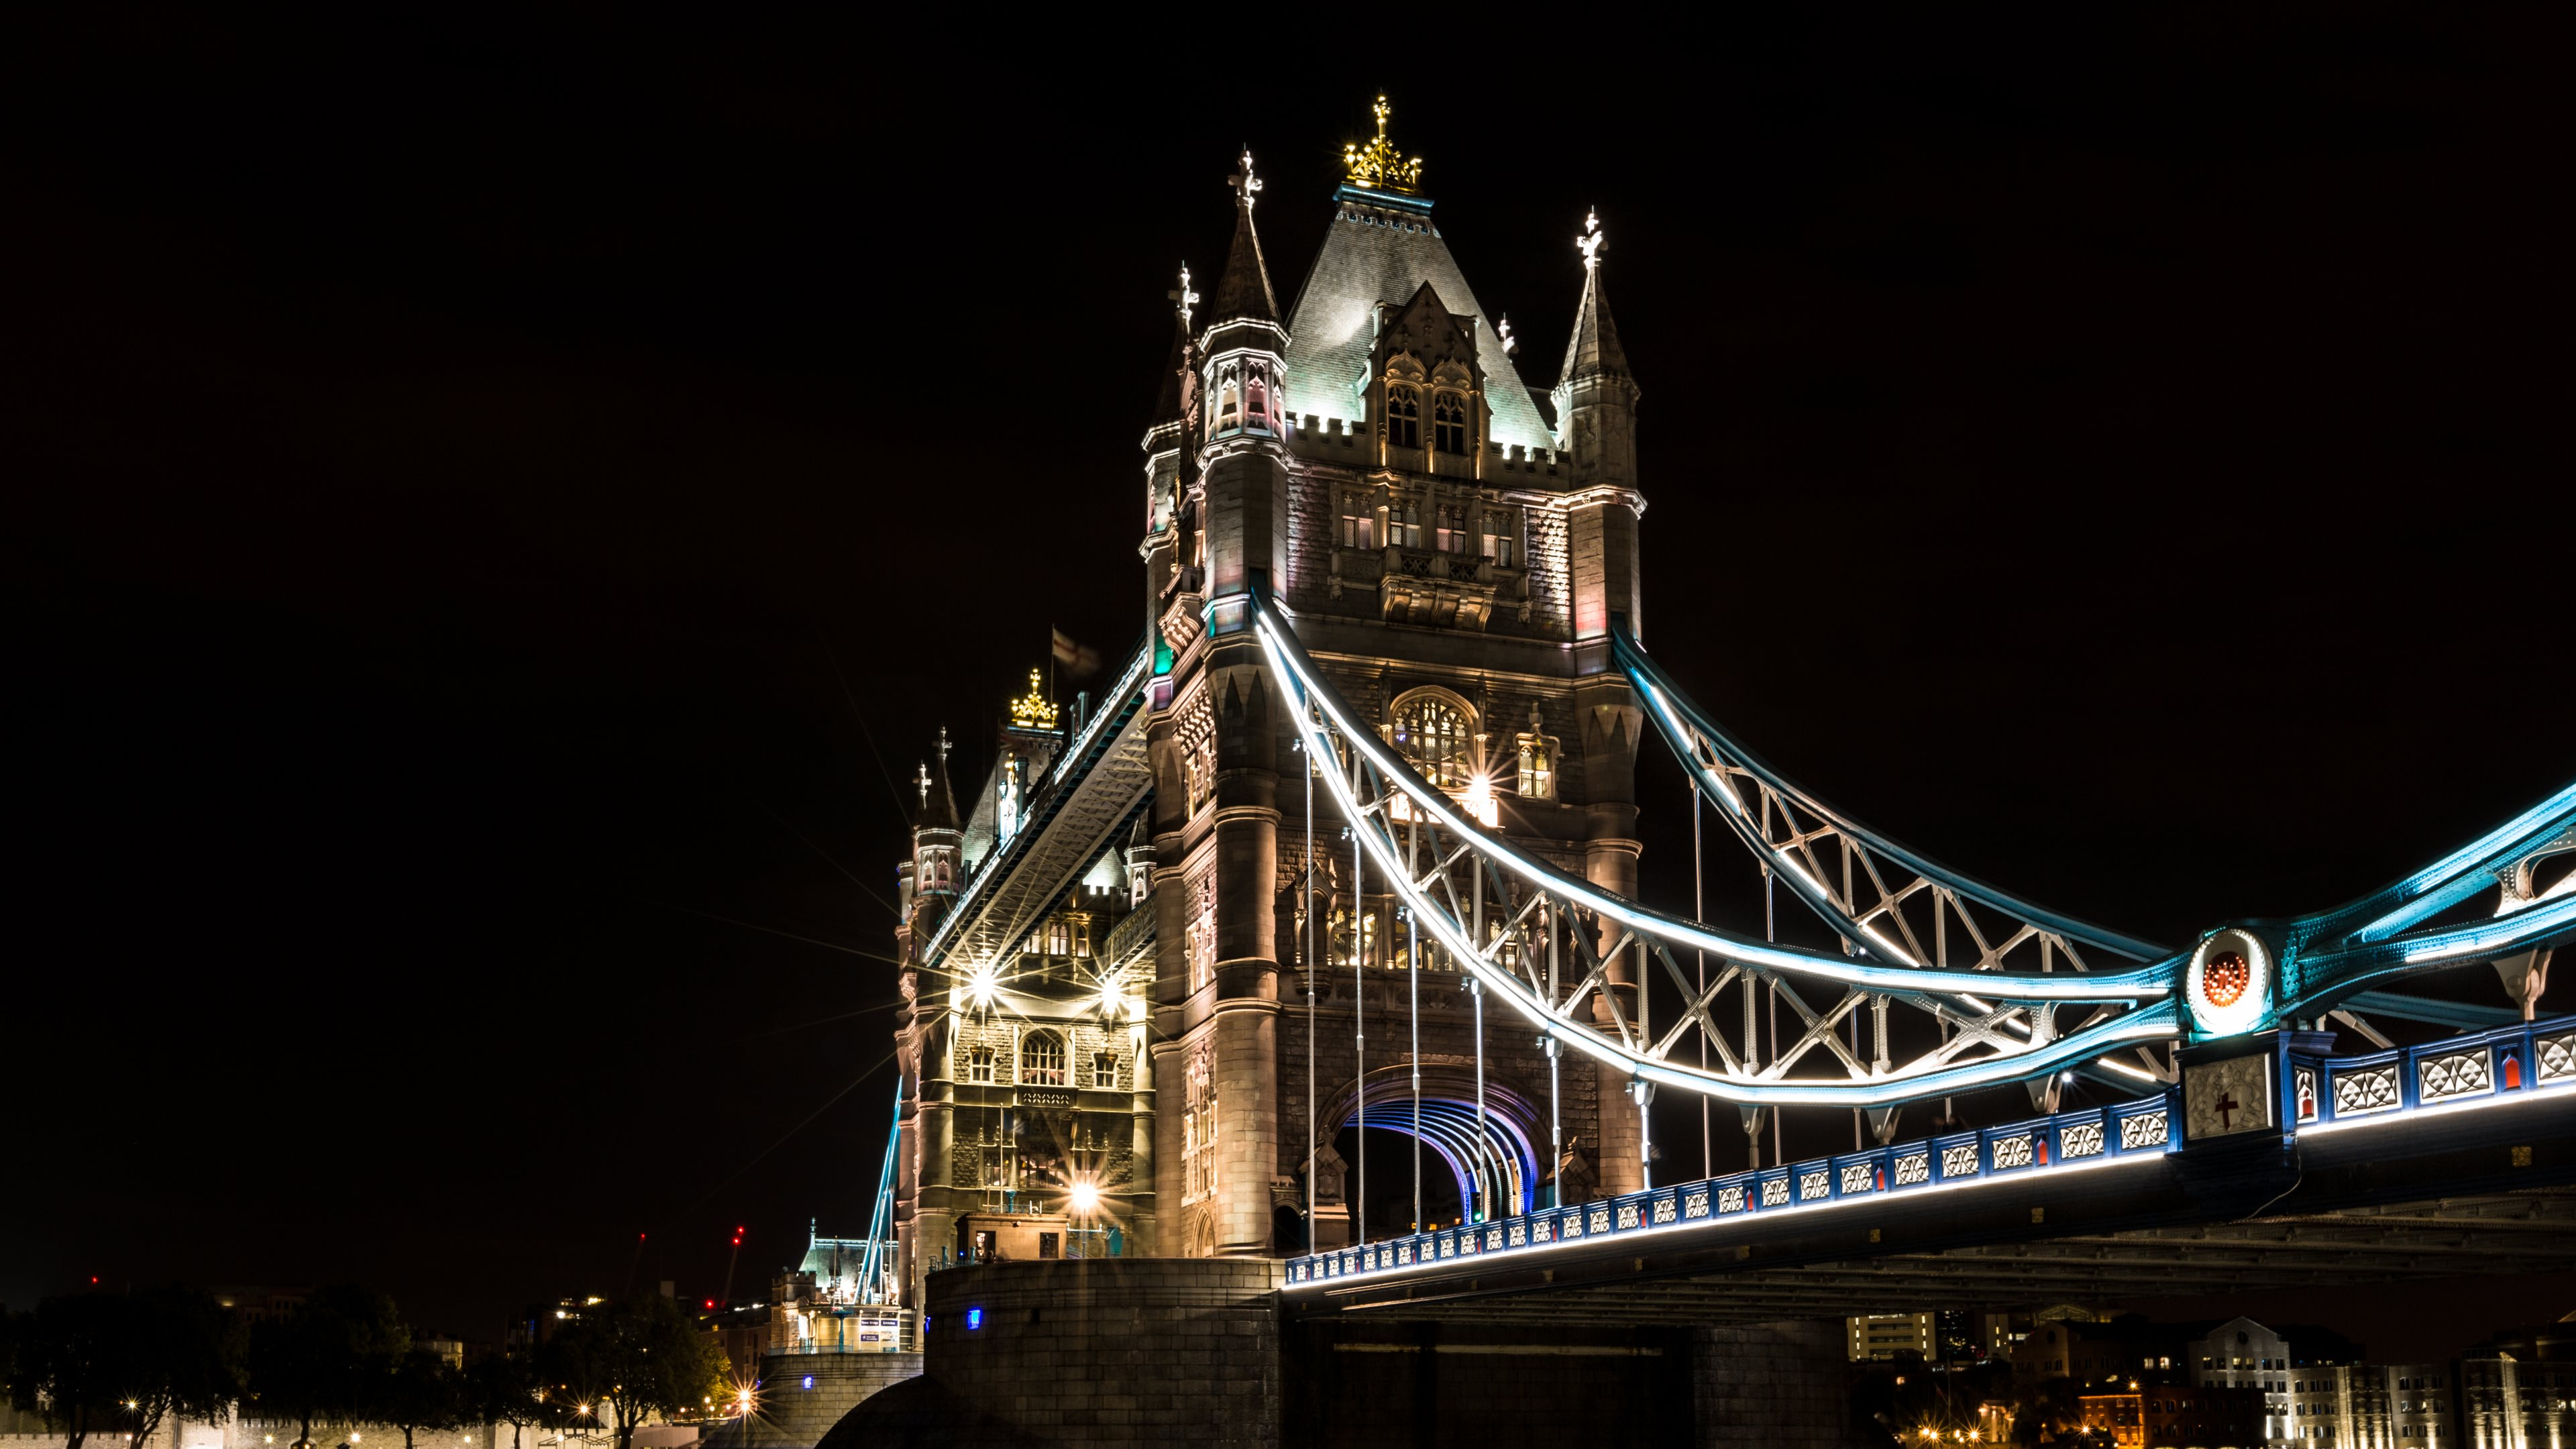 108 Tower Bridge Hd Wallpapers Background Images Wallpaper Abyss